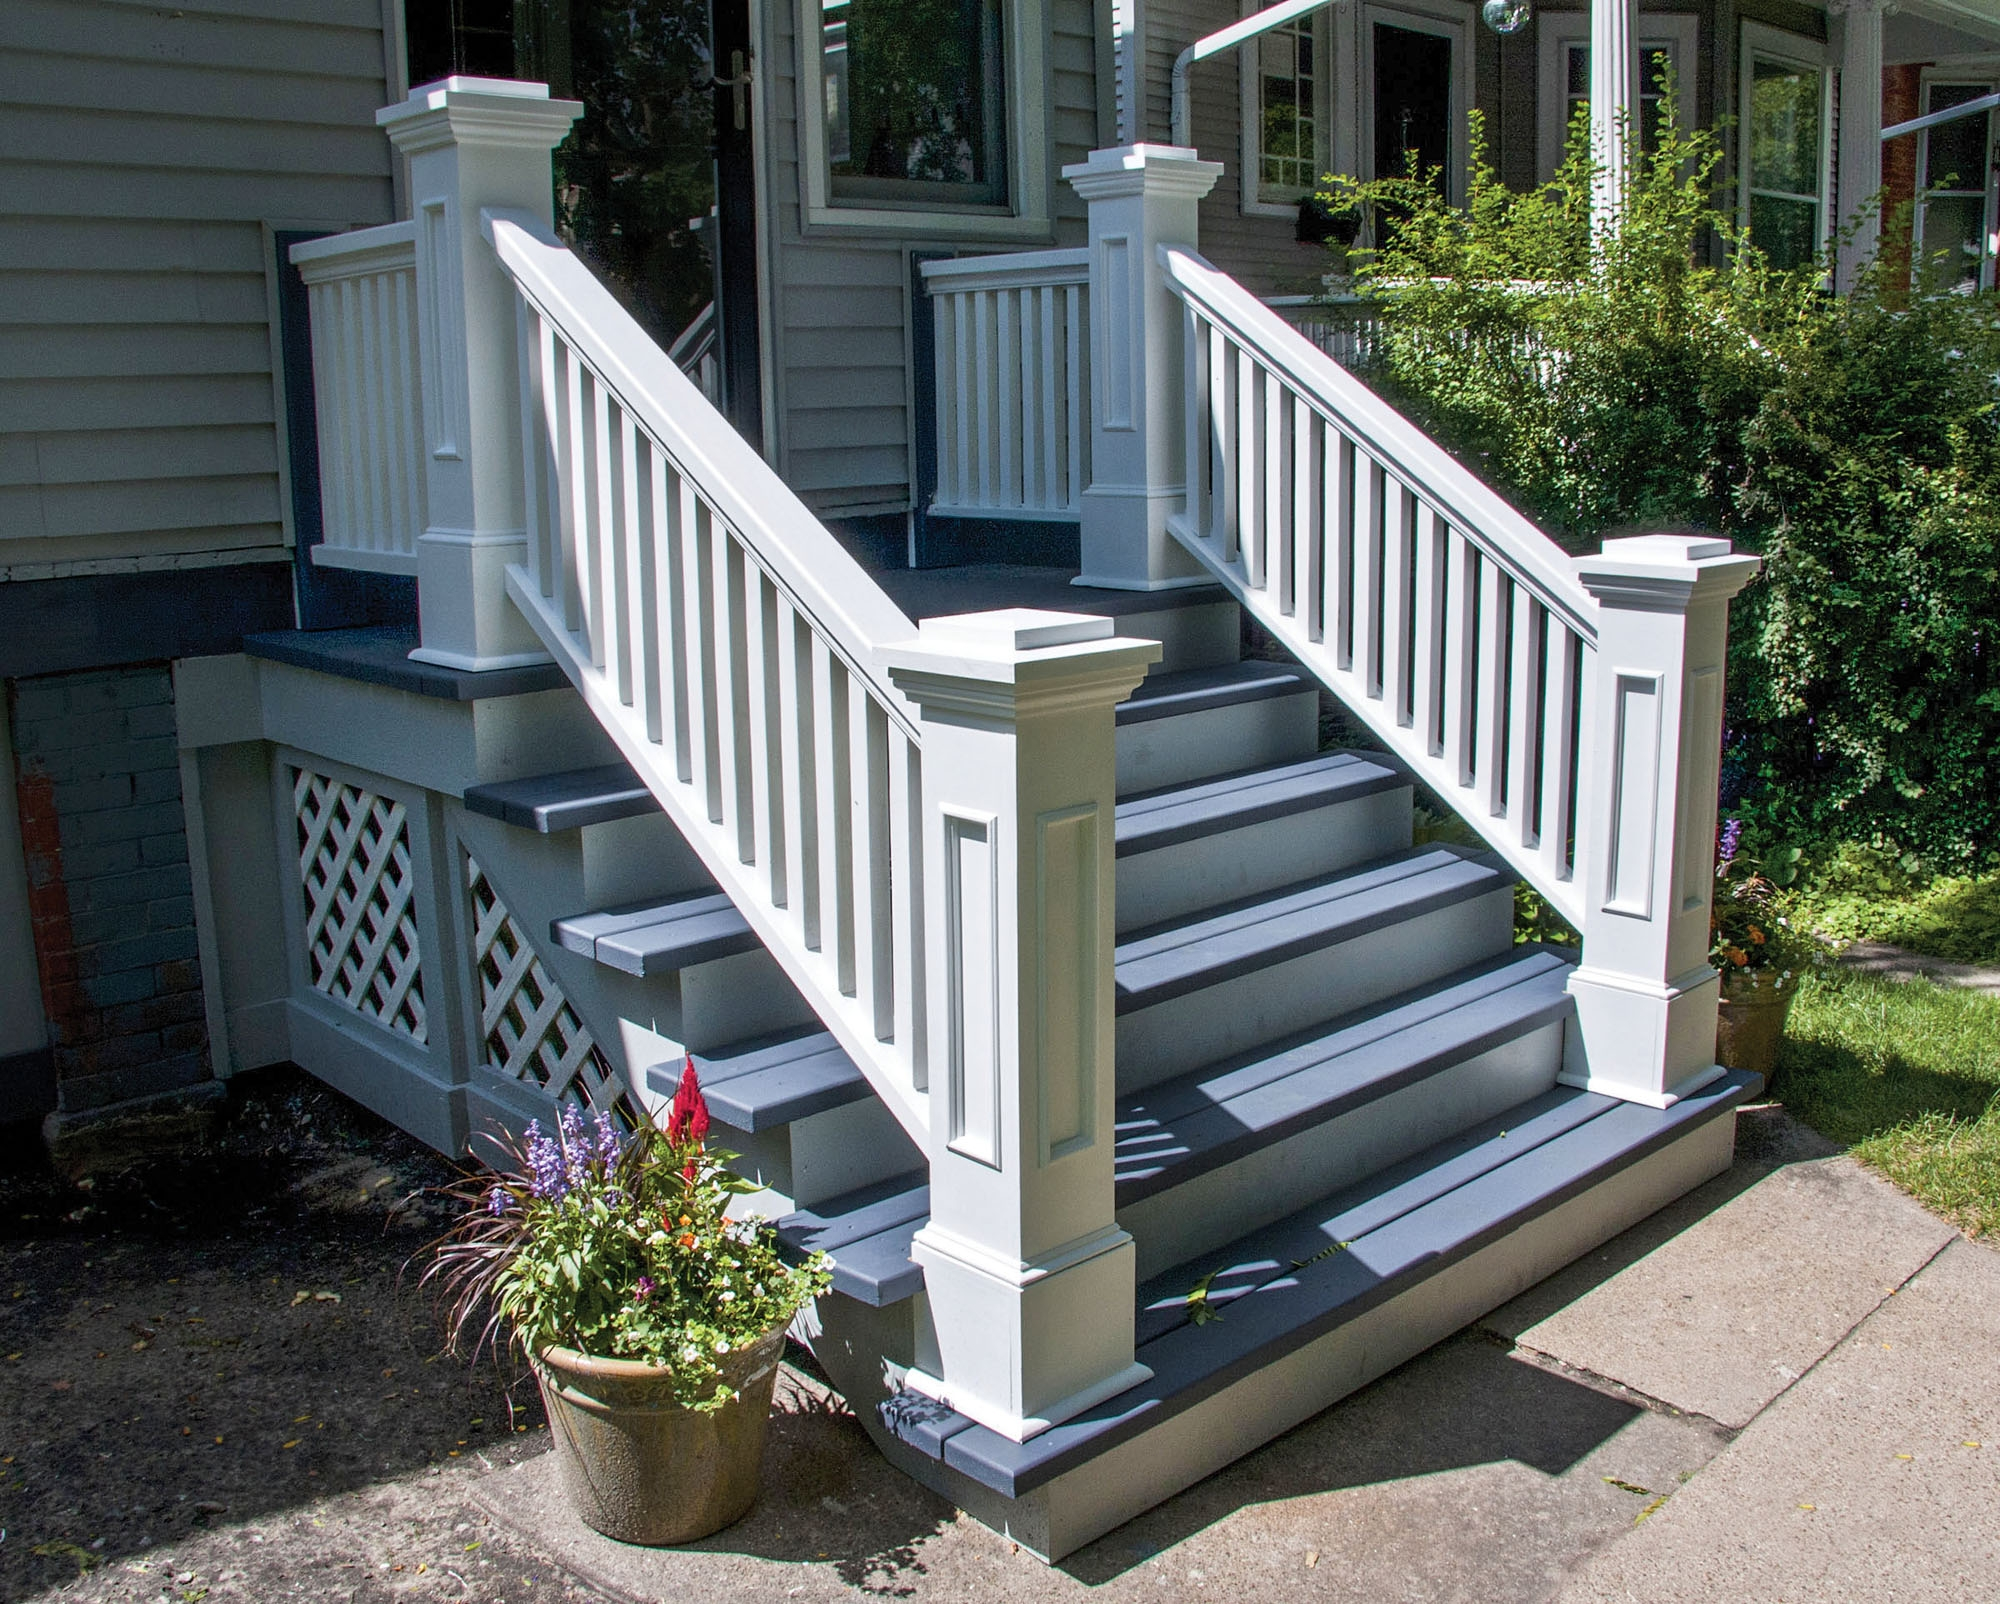 Graceful Stoops Entry Steps Old House Journal Magazine   Premade Steps For Outside   Handrail   Wood   Stair Railing   Deck   Wooden